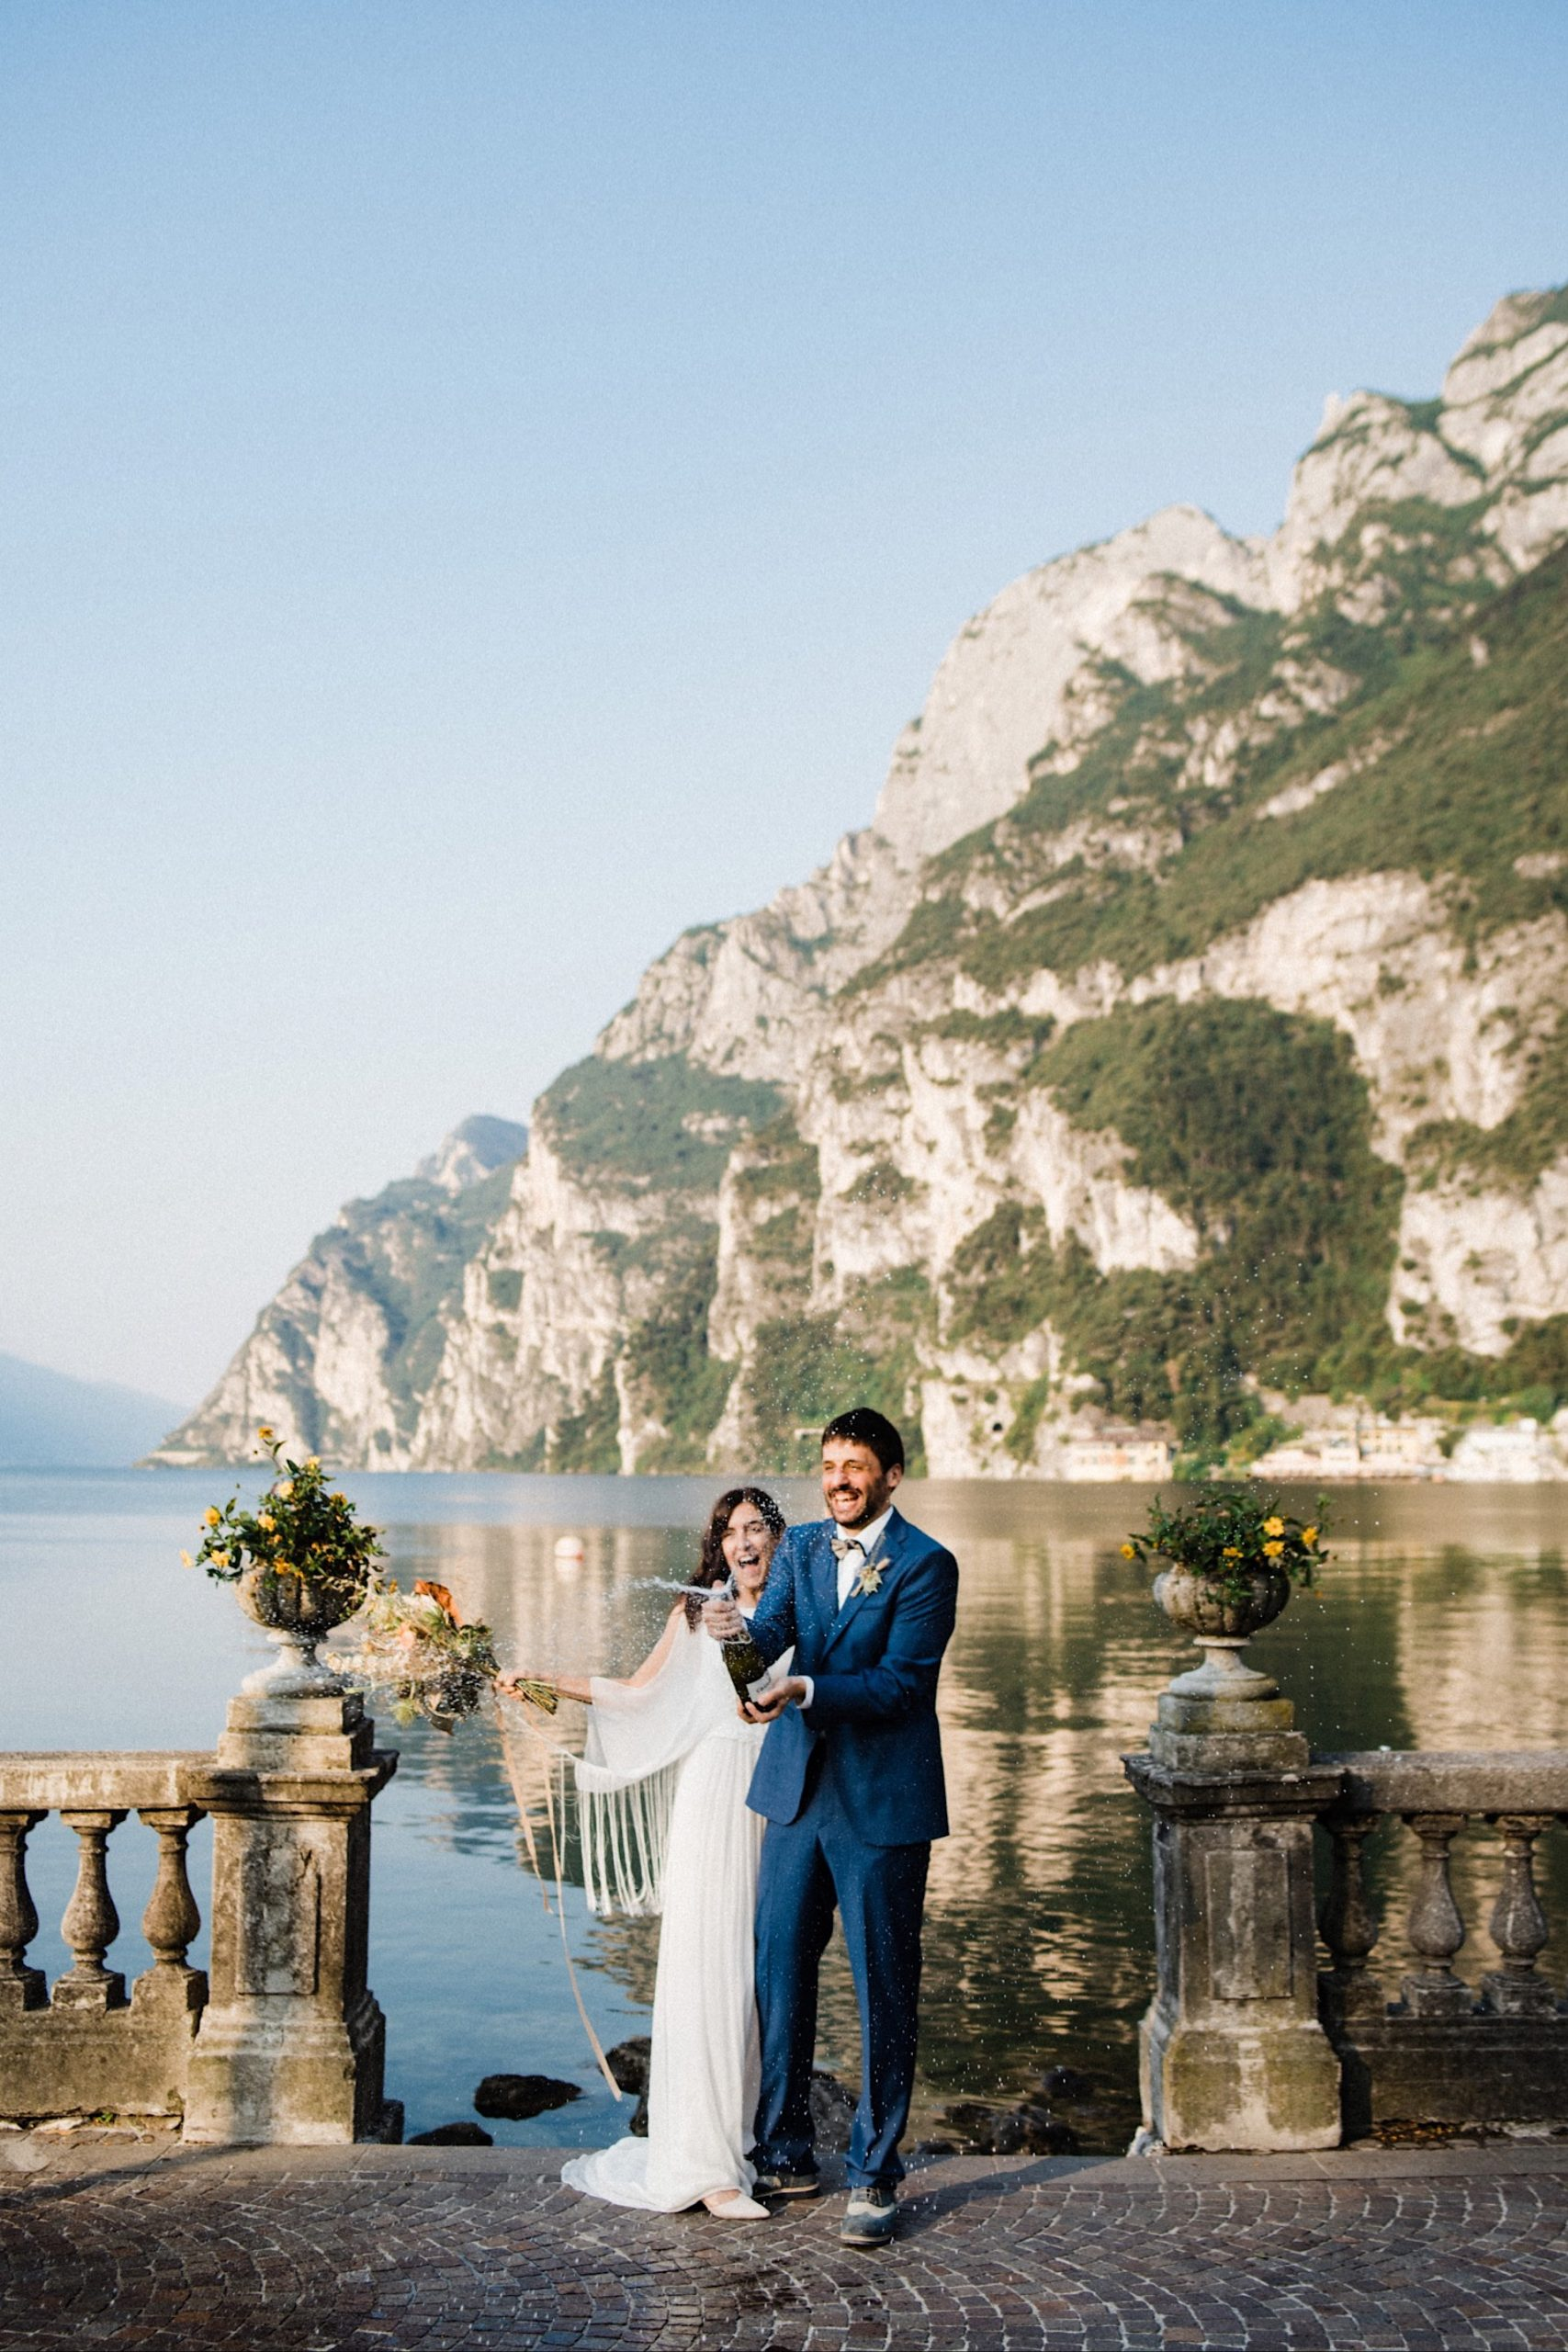 A couple pop open a bottle of Prosecco to celebrate their elopement in Italy. In the background, you can see Lake Garda and one of its surrounding mountains.